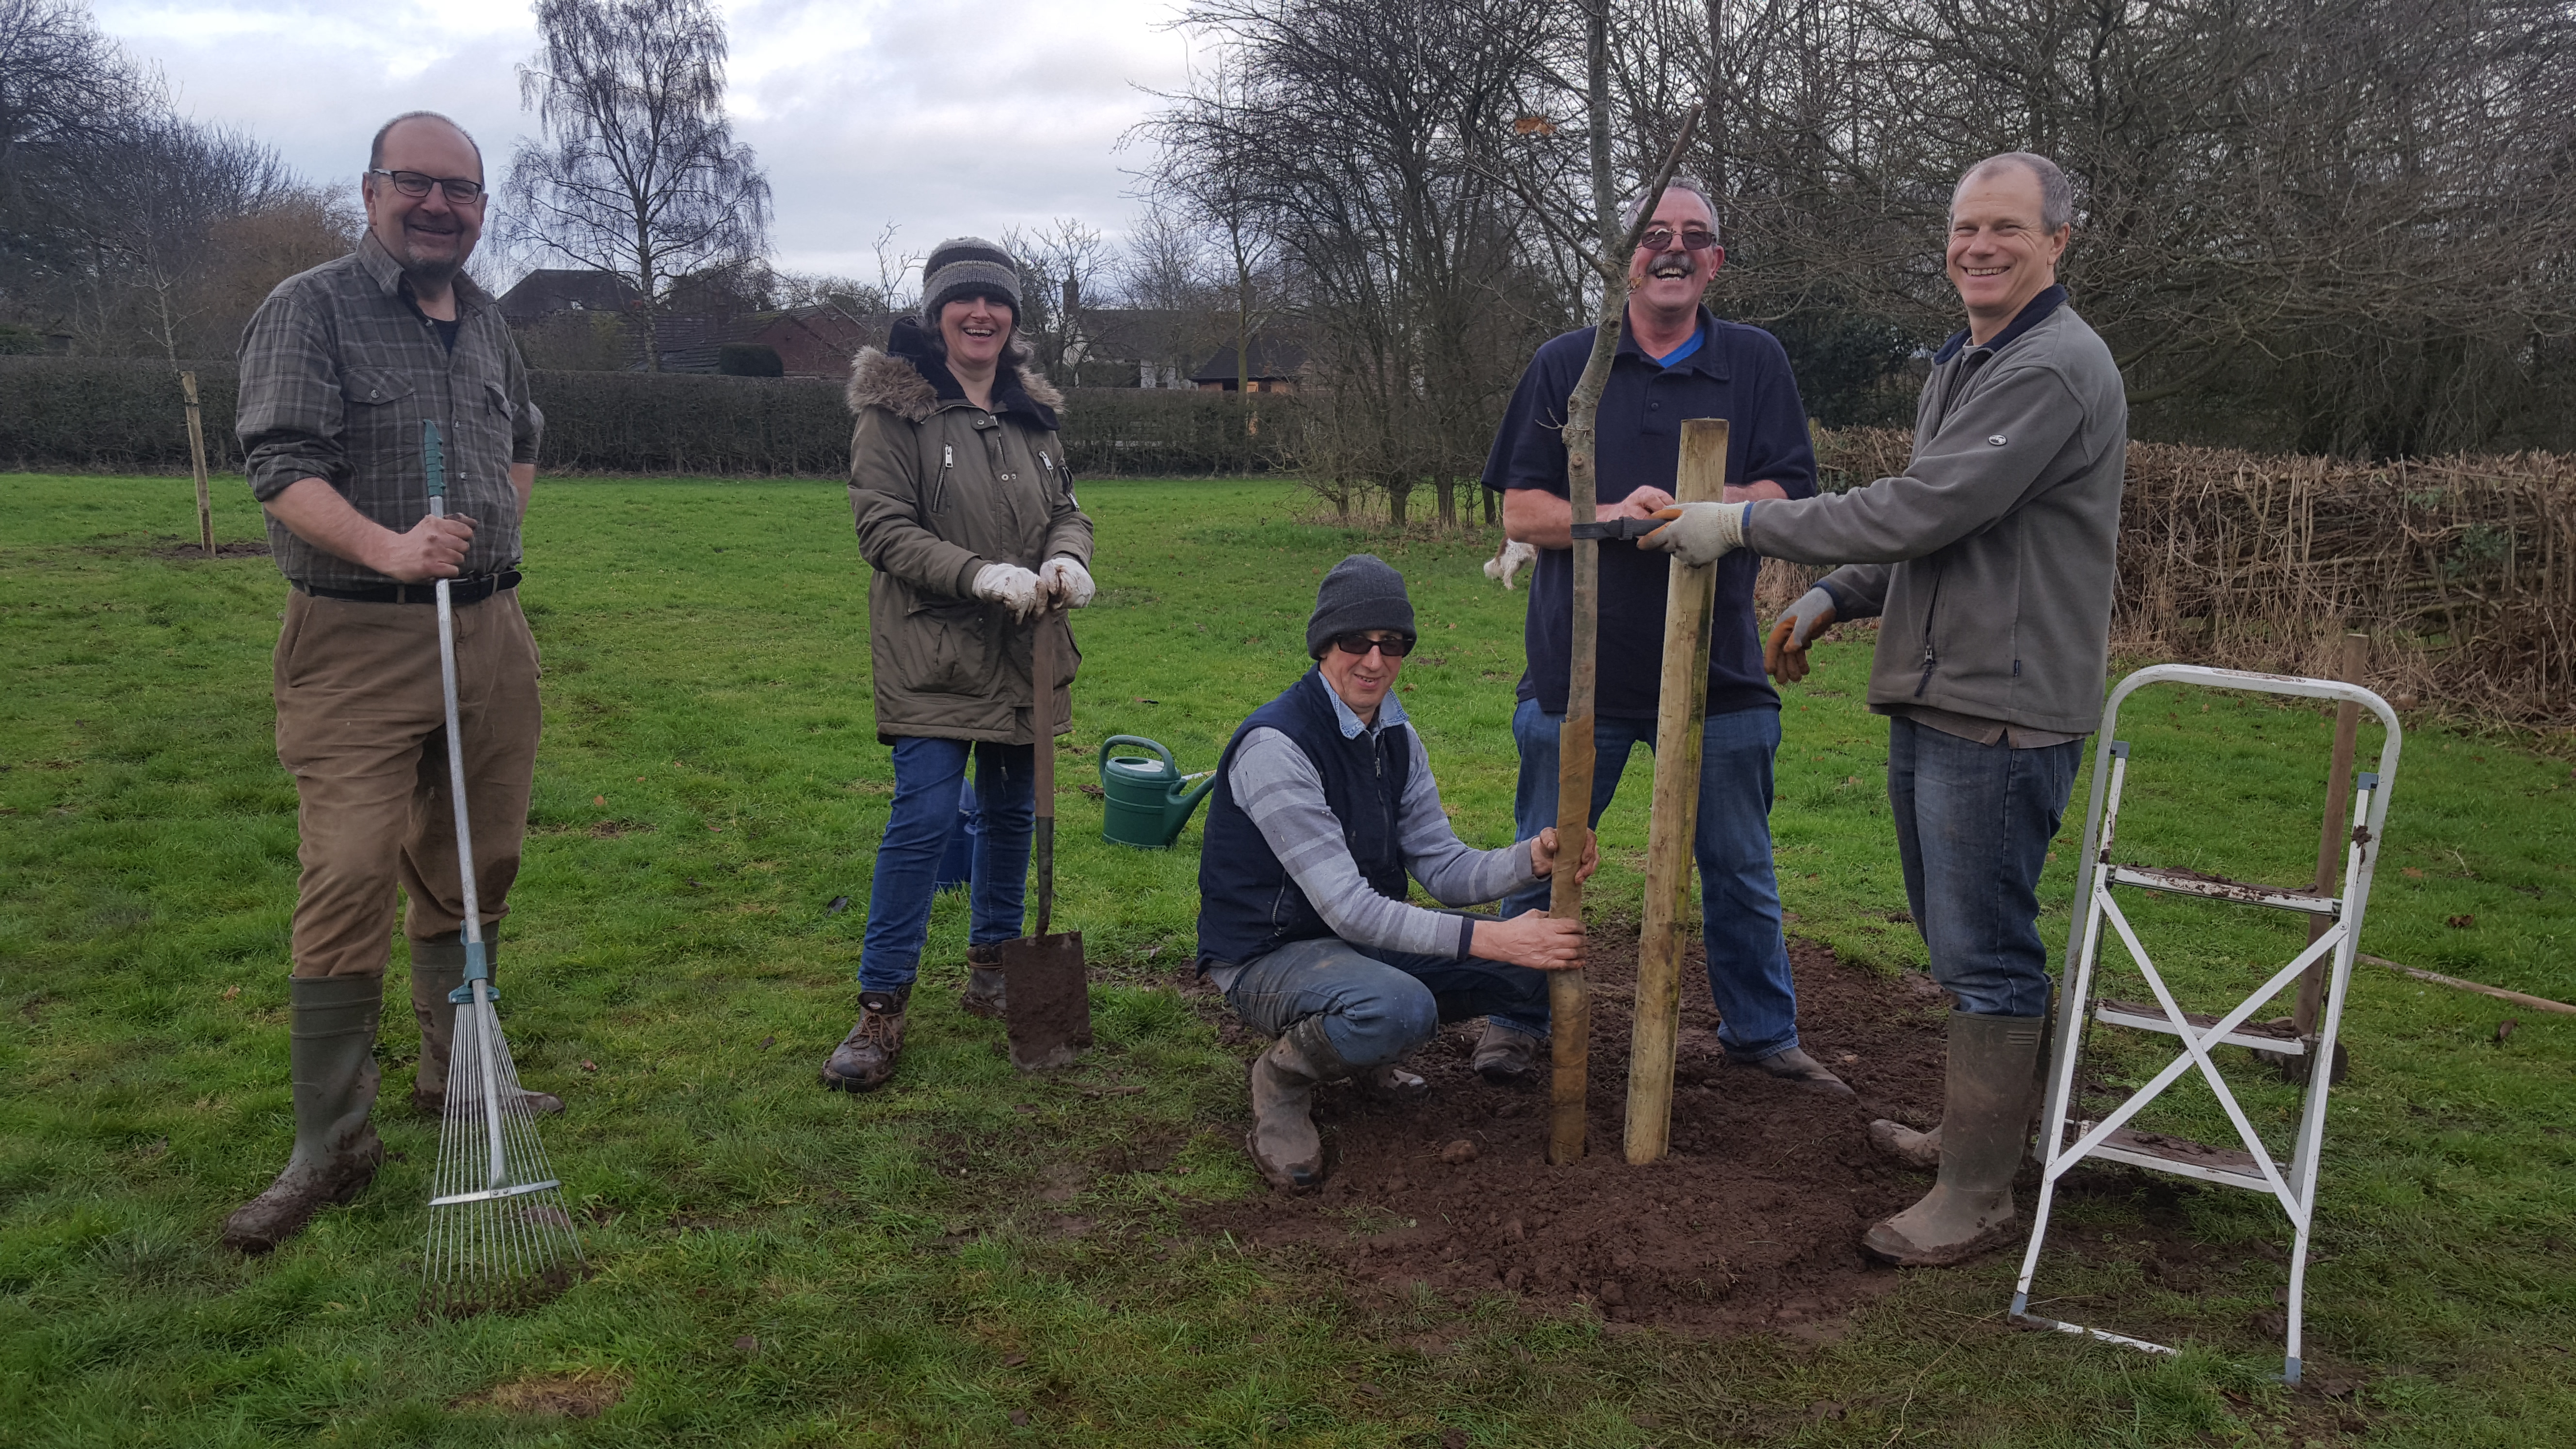 The Tree Project is completed with 9 oaks being planted in the Church Field